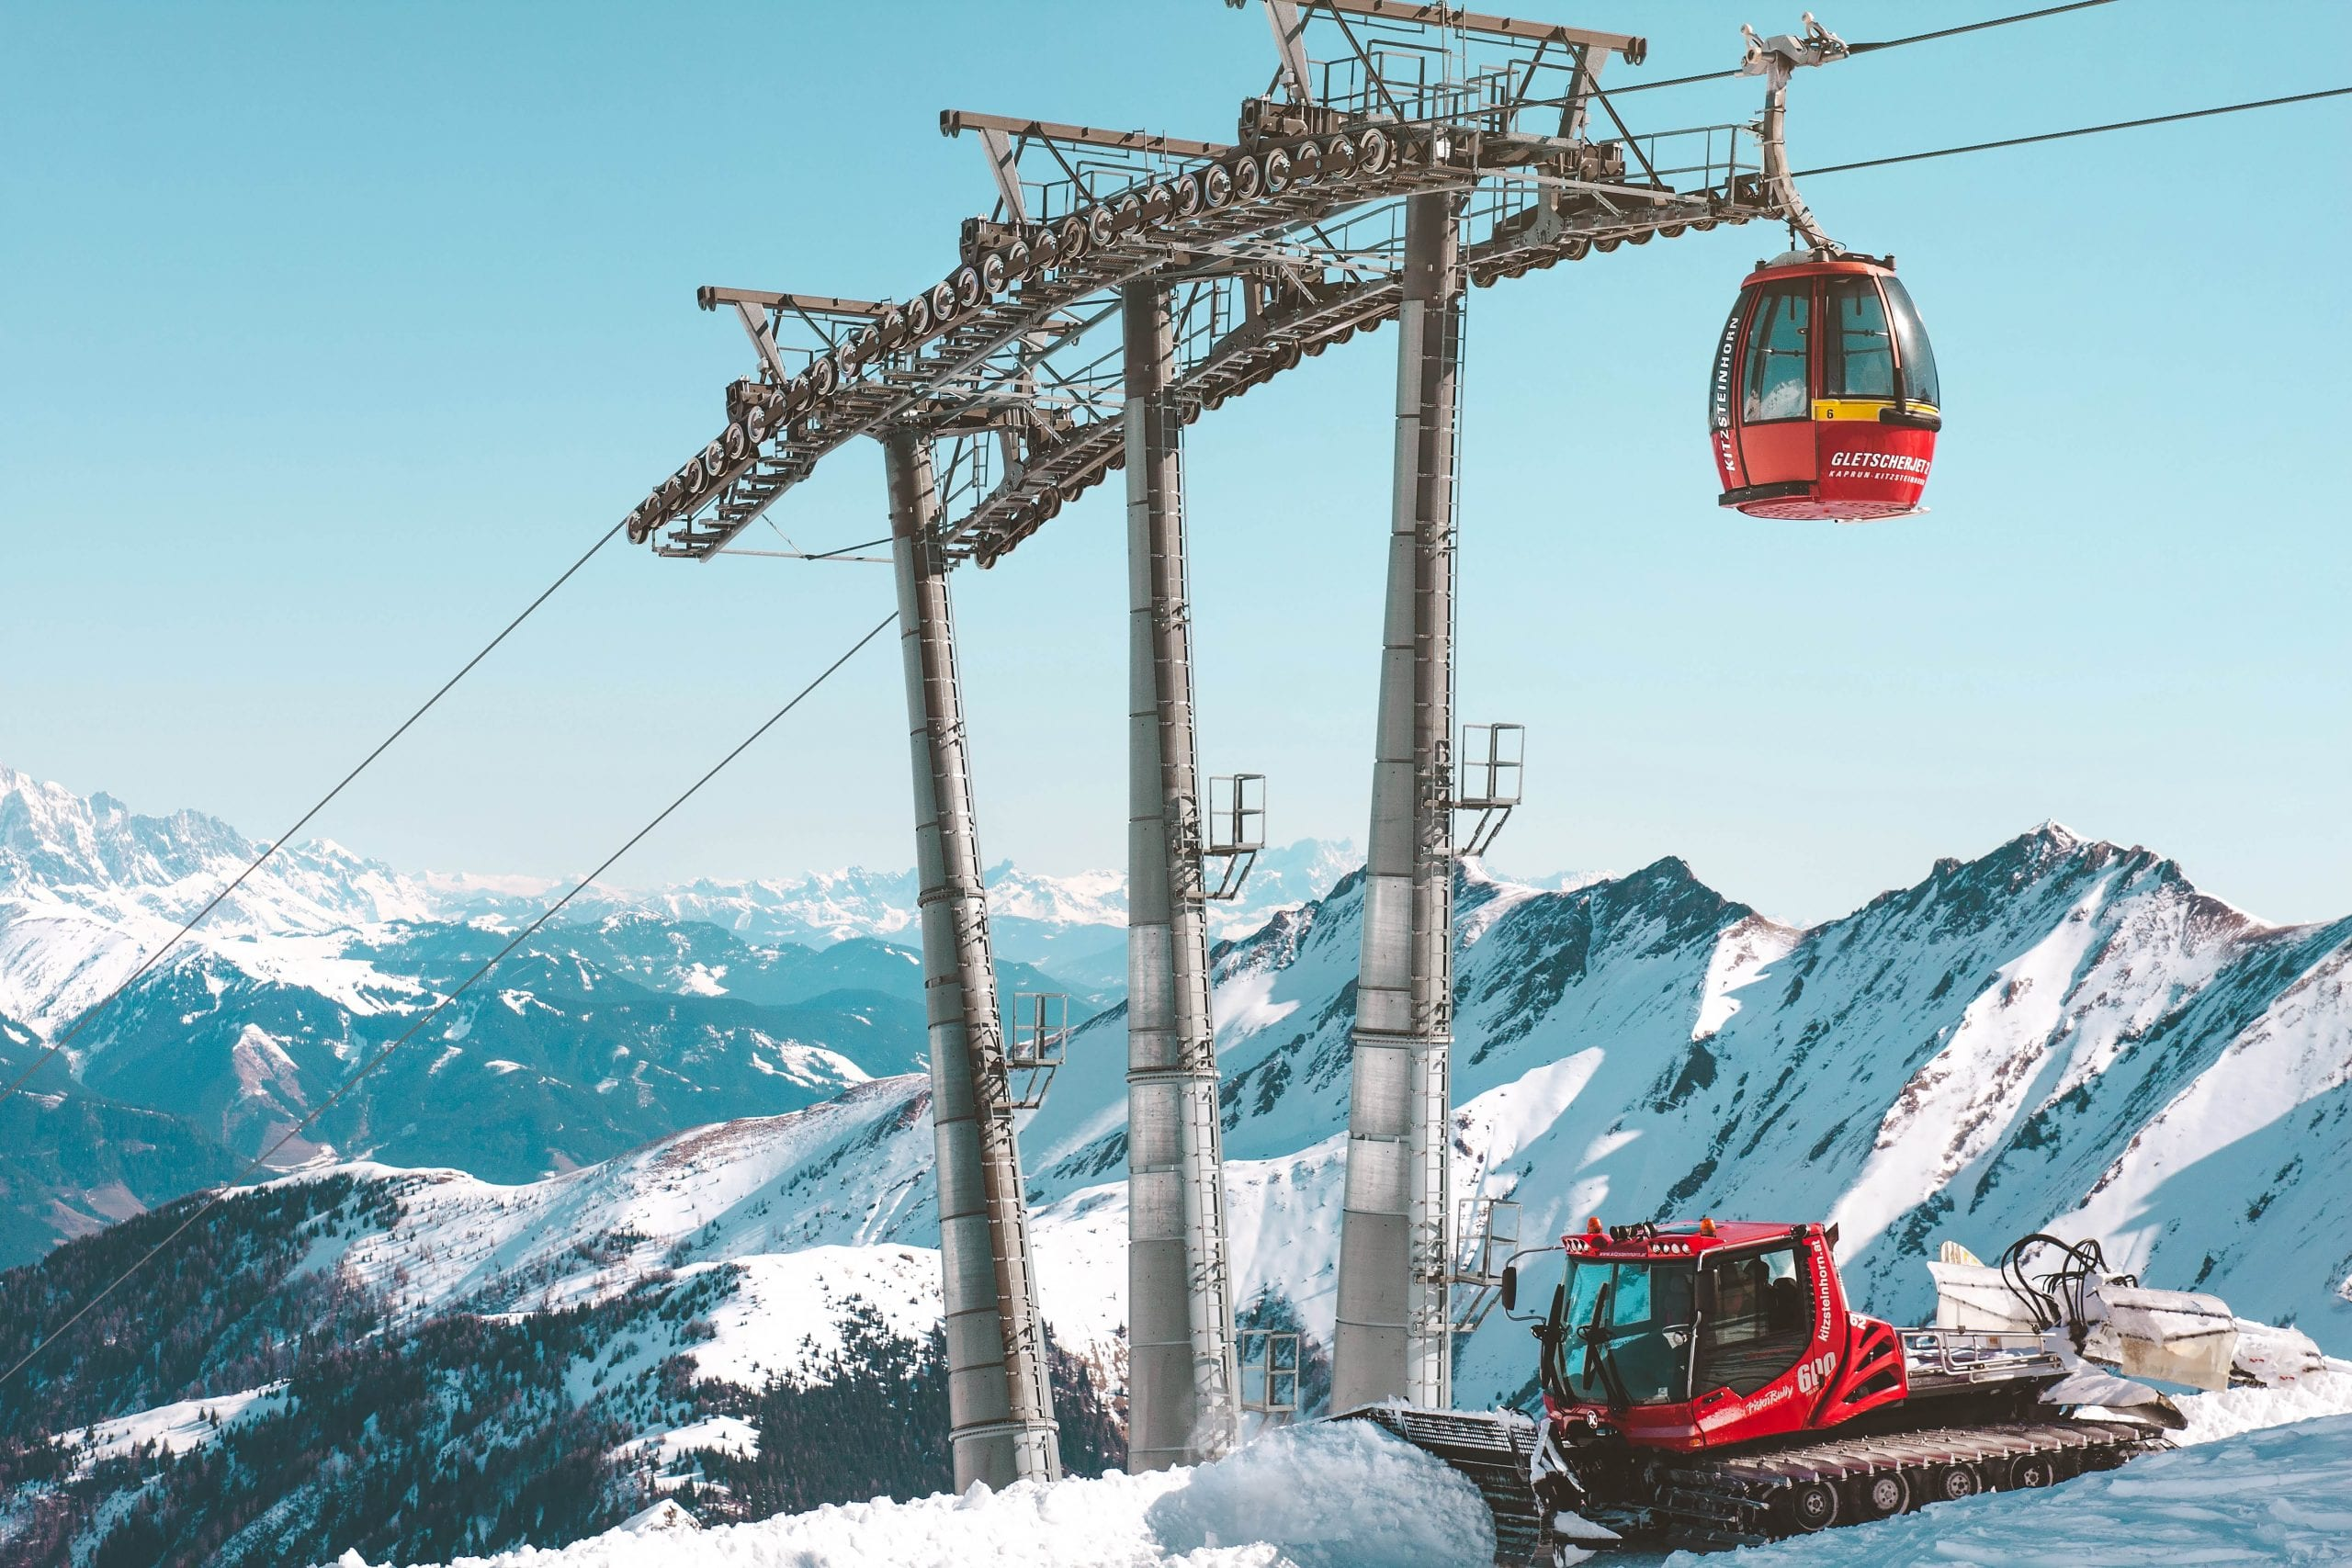 9 Affordable US Ski Towns For Shredding On A Budget